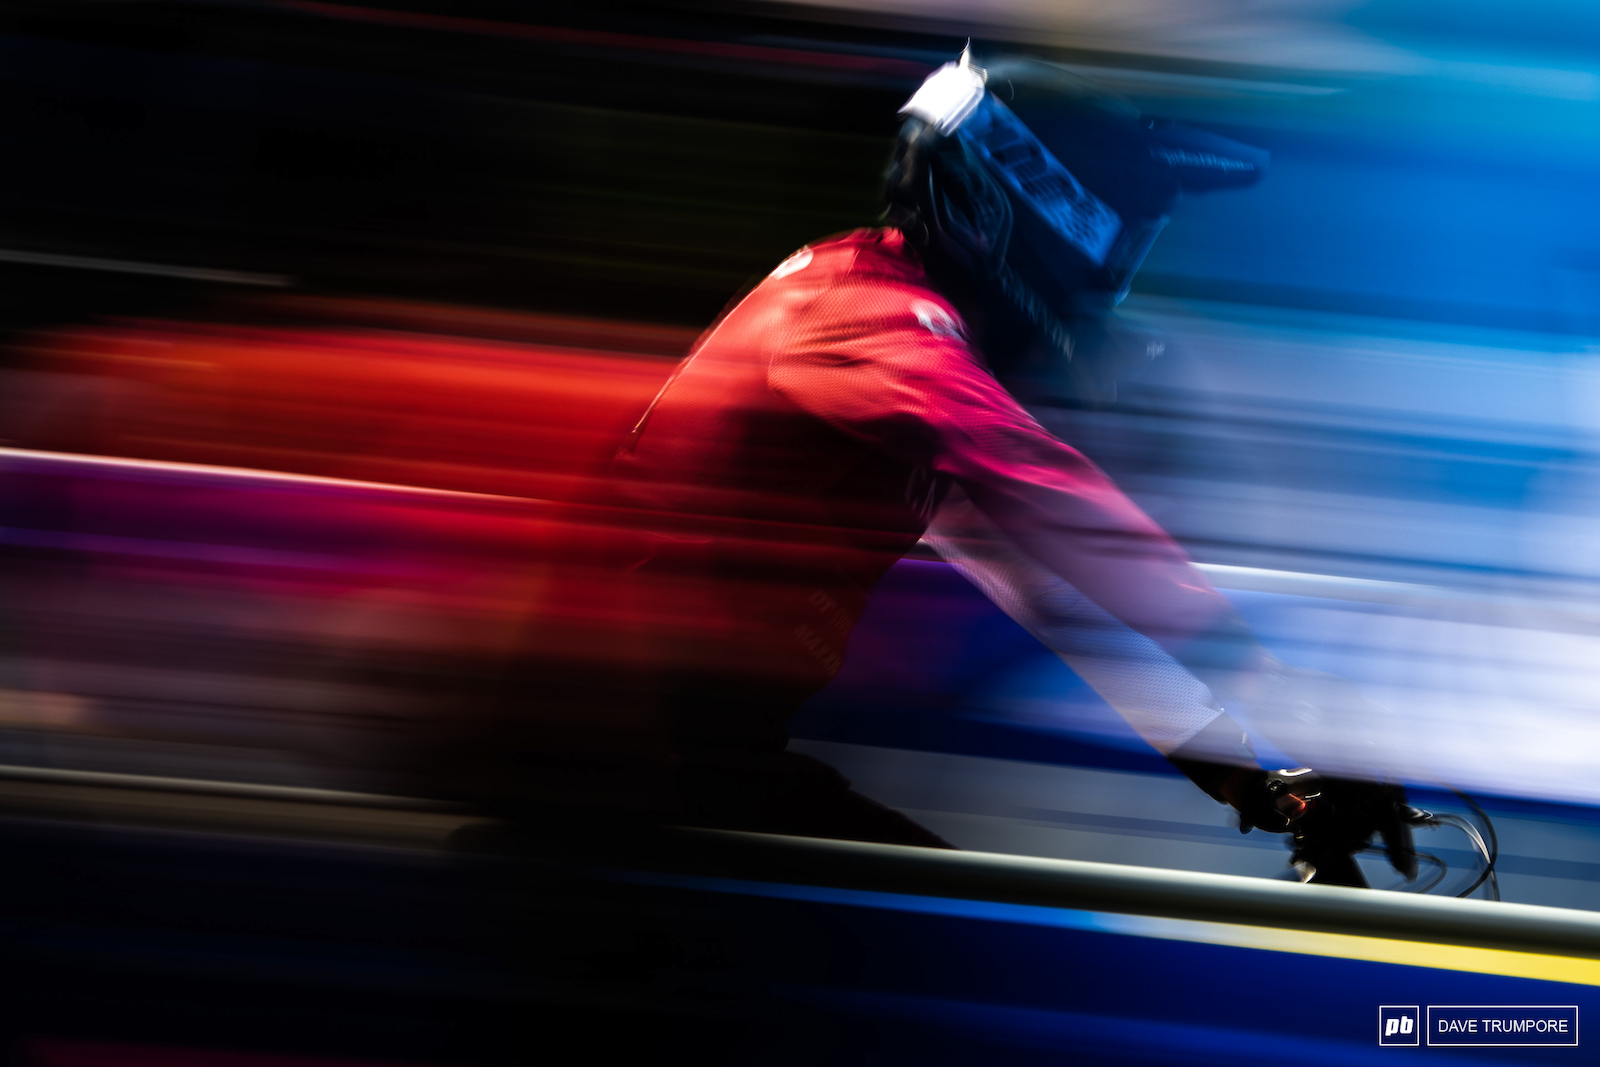 Panning with some French colors at the finish line